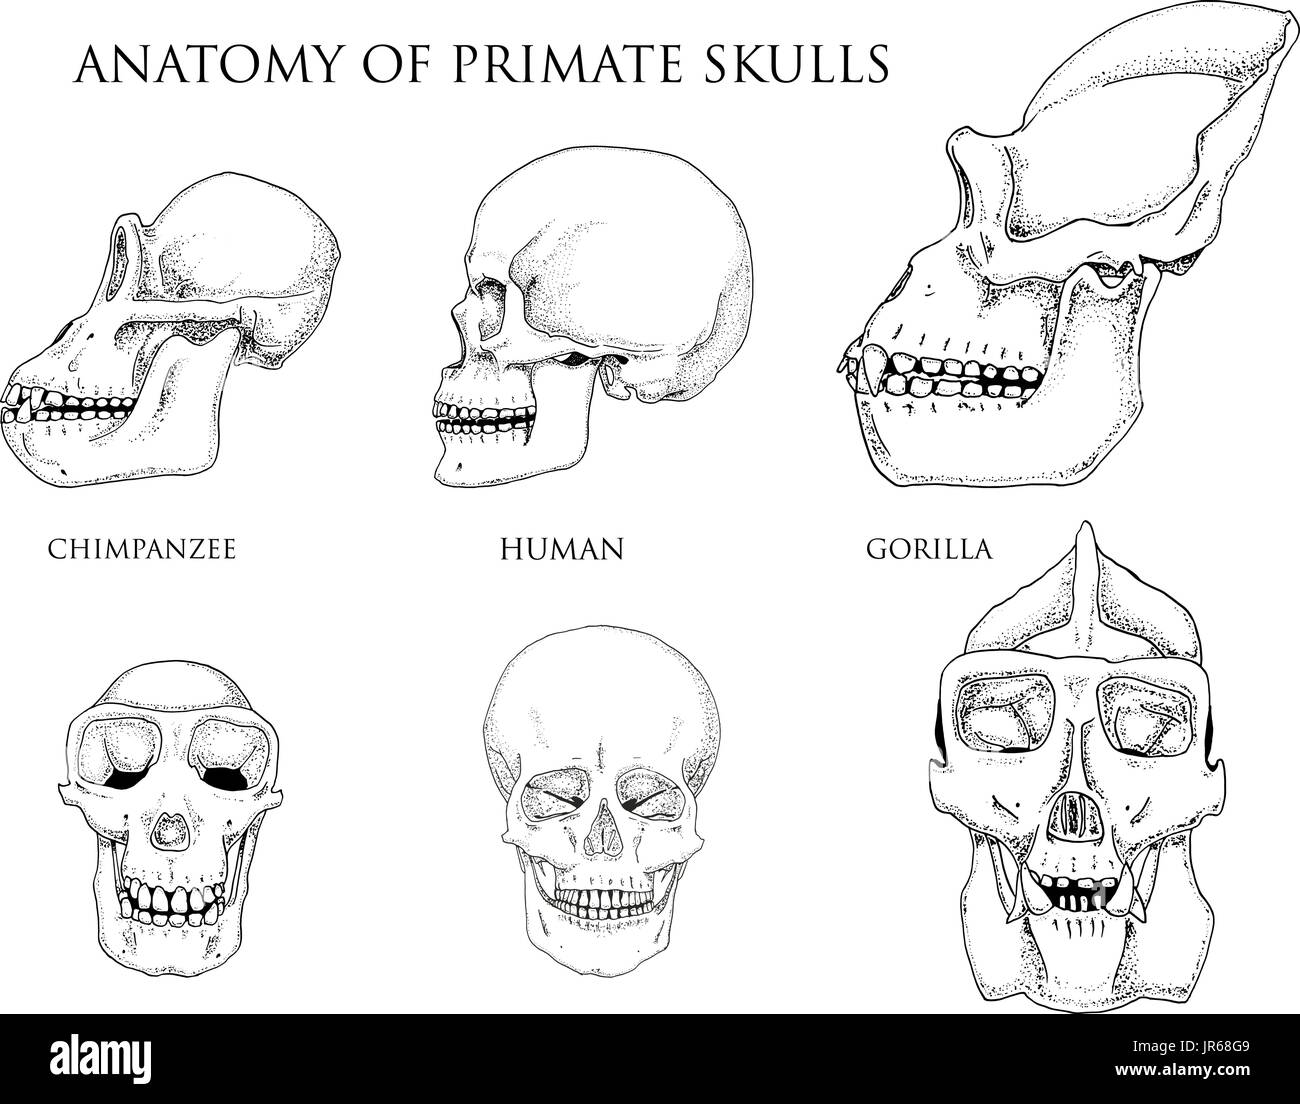 Chimpanzee Anatomy Stock Photos Amp Chimpanzee Anatomy Stock